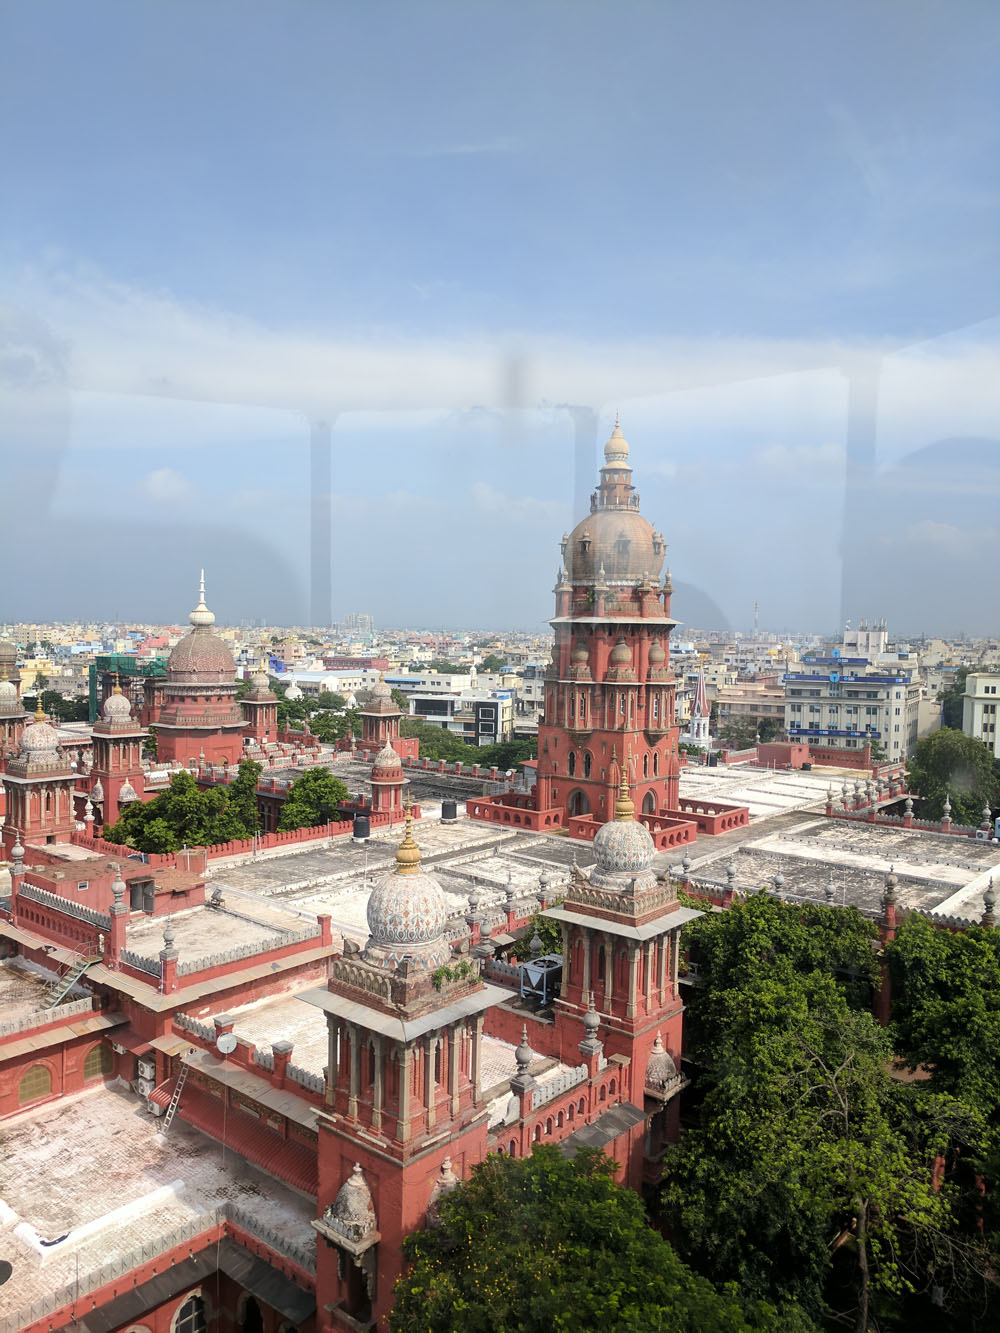 View of the Madras High Court building - from the top of the lighthouse